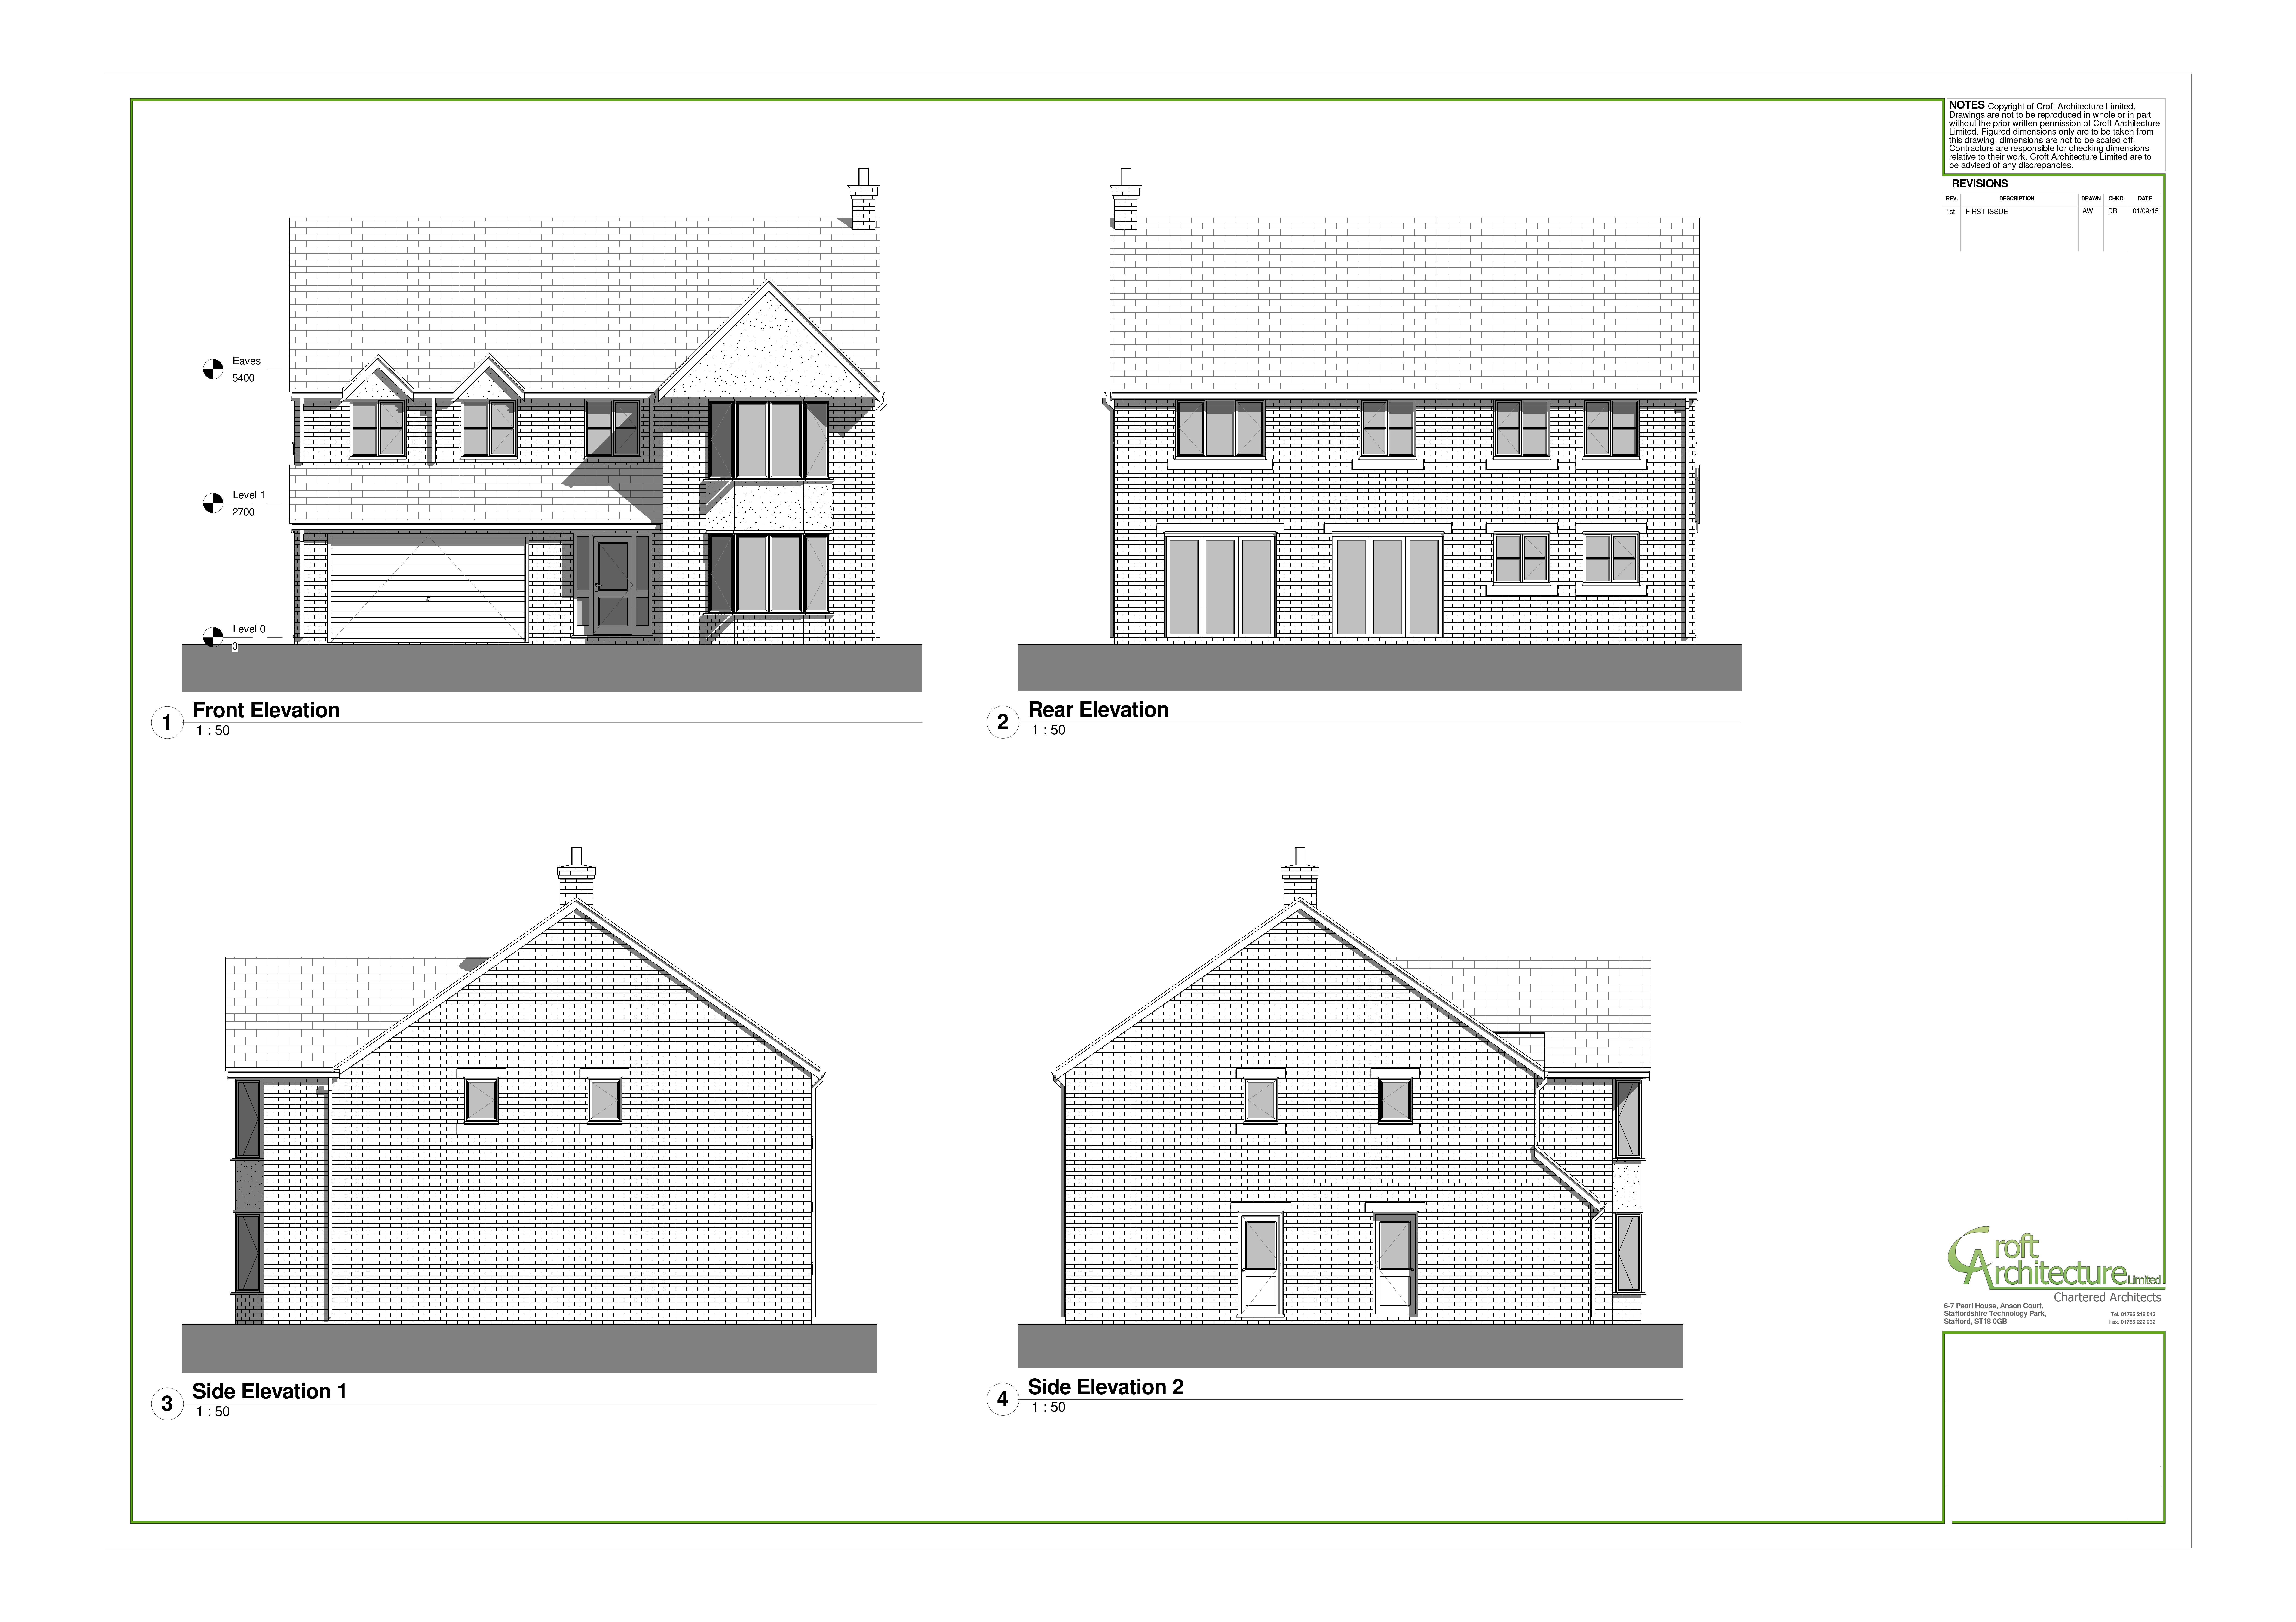 Croft Architecture House Type 5 Proposed Luxury Housing in Staffordshire